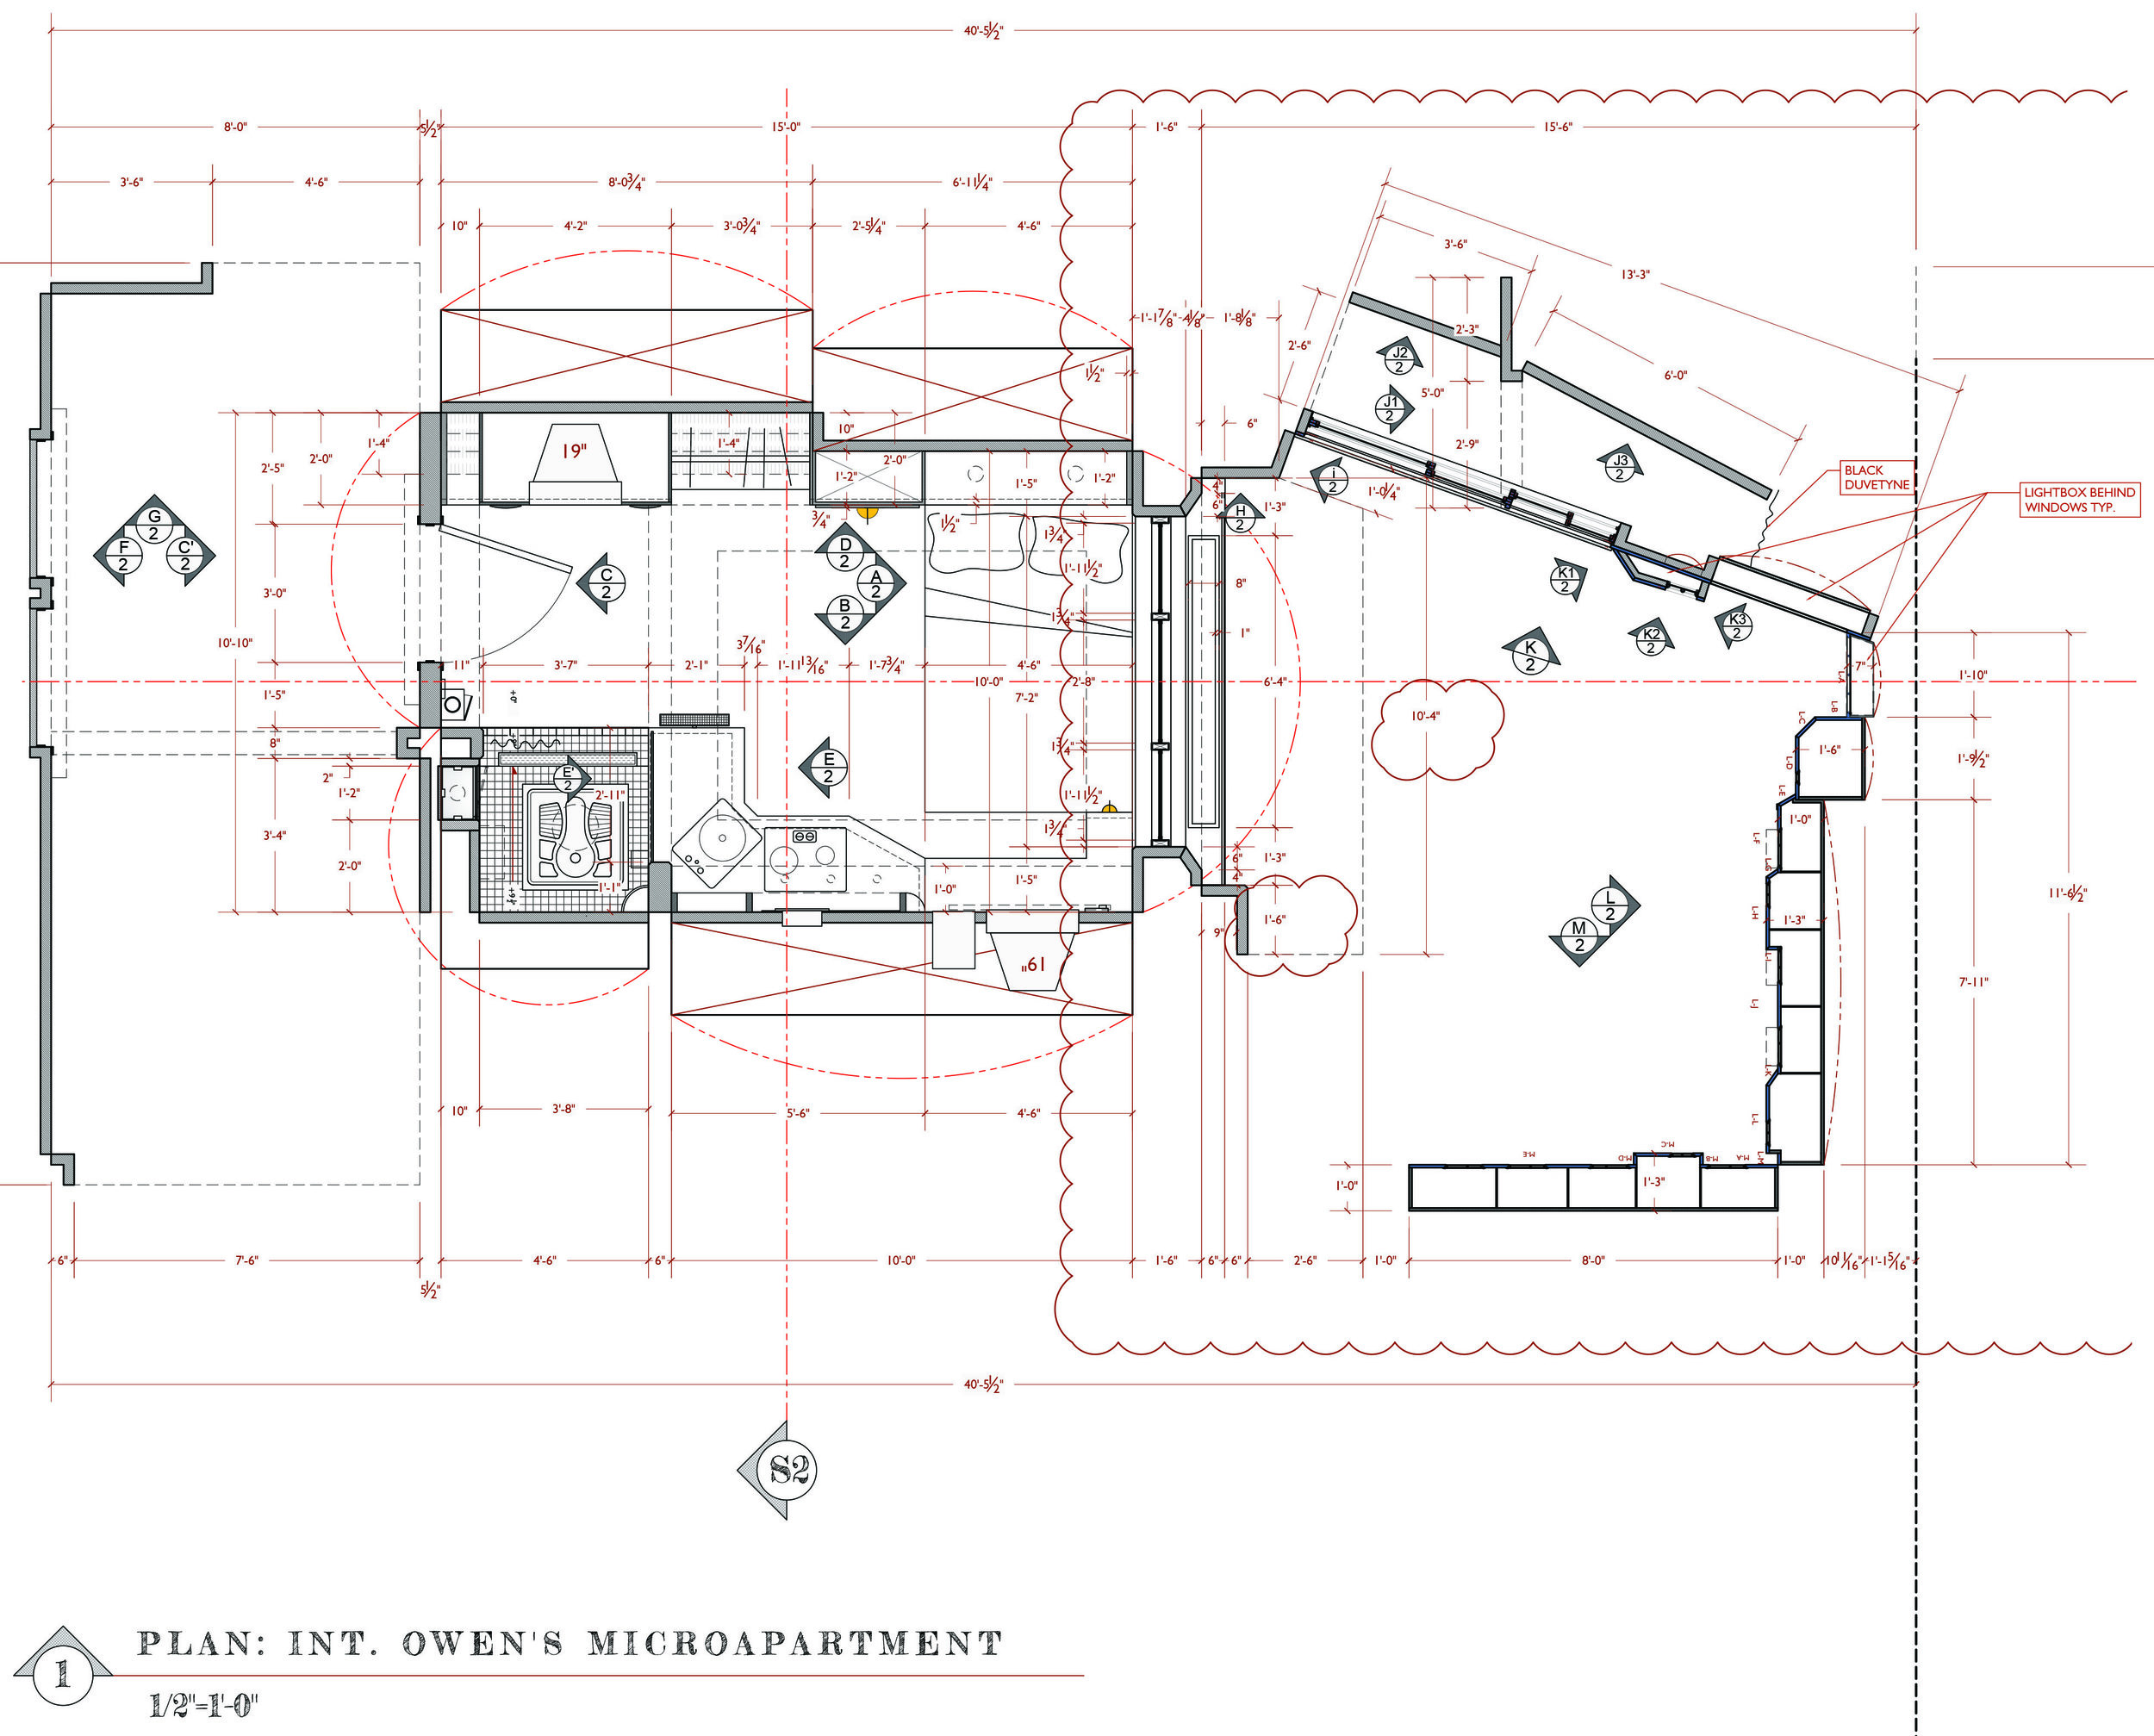 OWEN'S APARTMENT - FLOOR PLAN